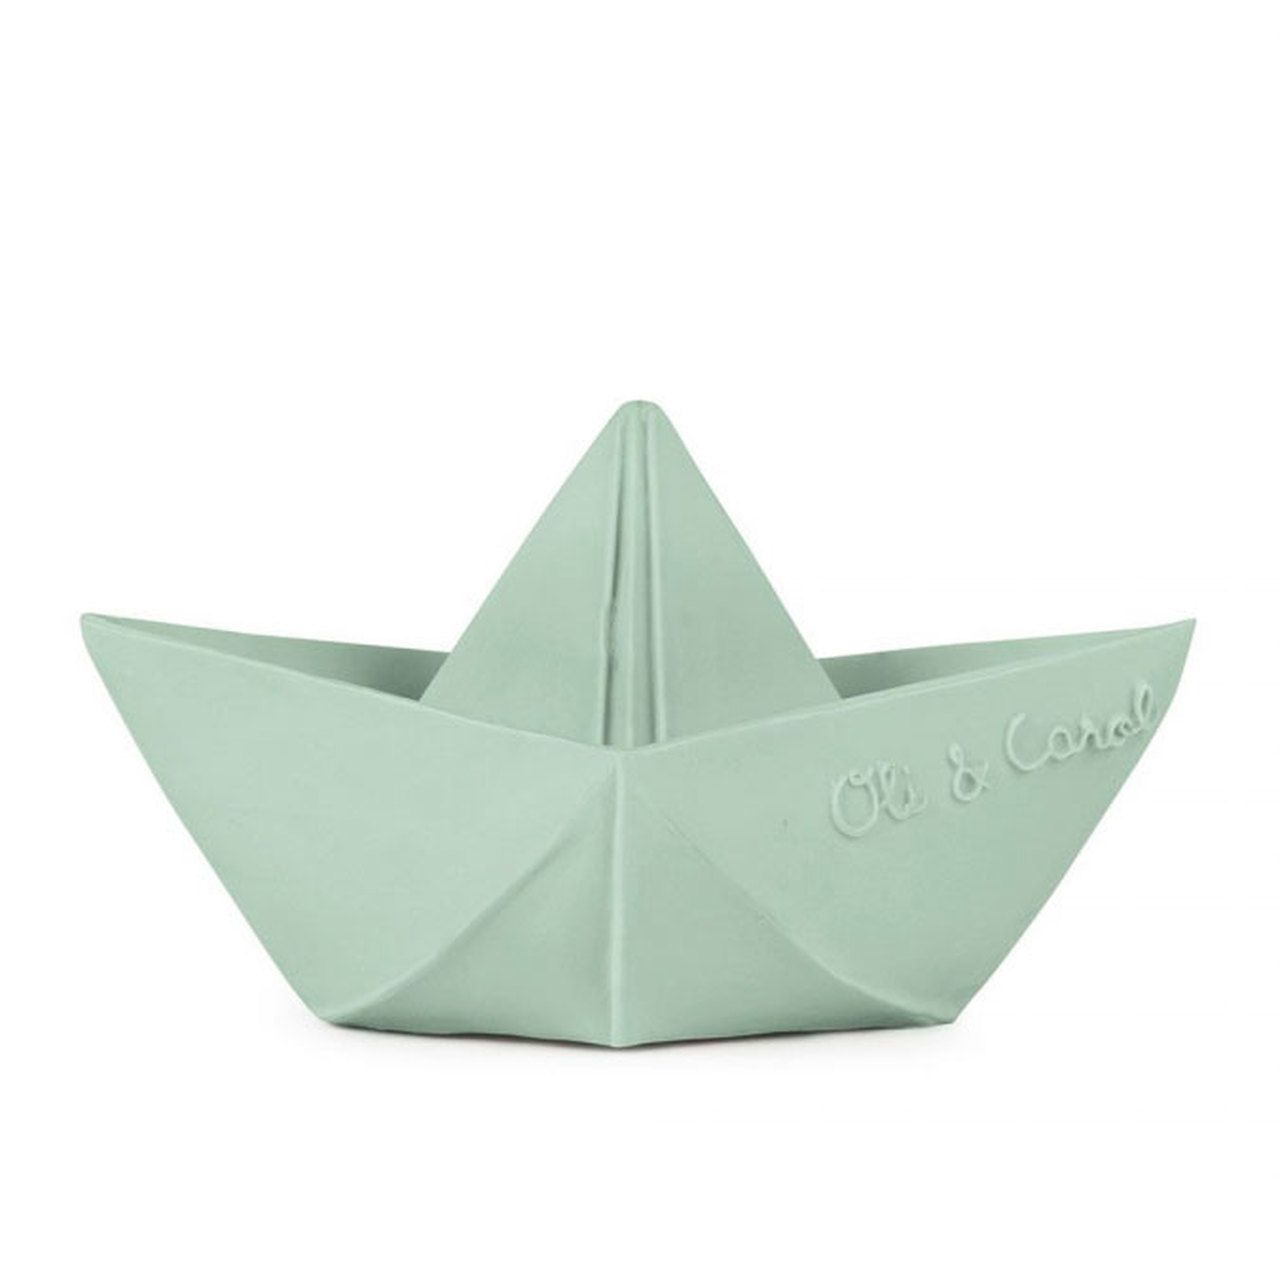 Photo of Origami Boat, Mint